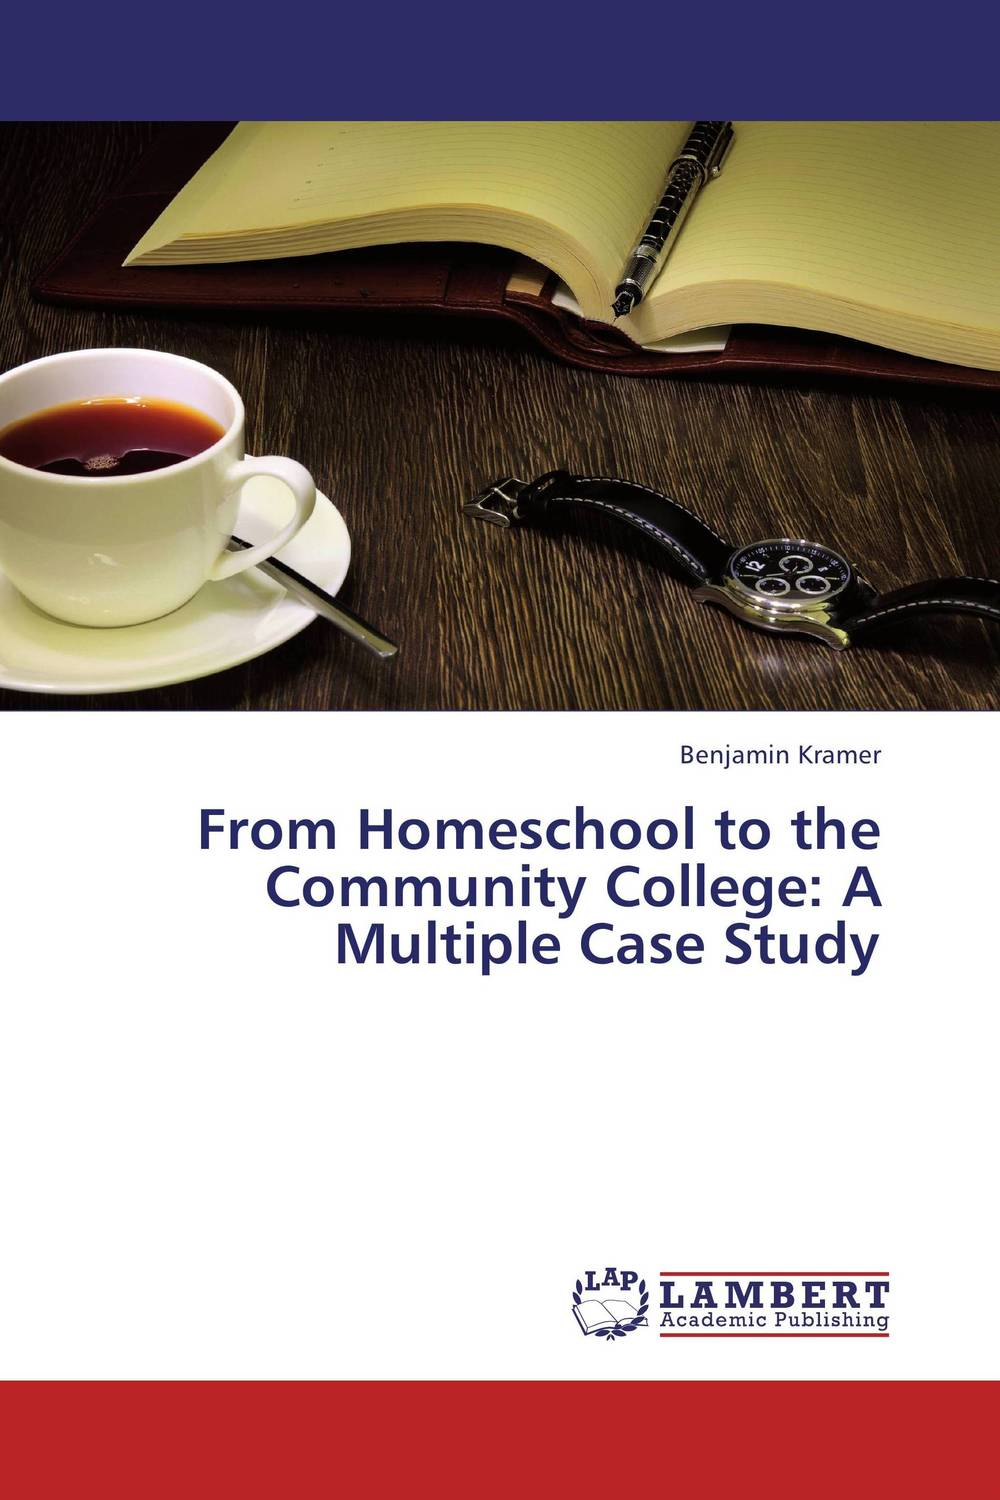 From Homeschool to the Community College: A Multiple Case Study community college students experiences with a leadership program